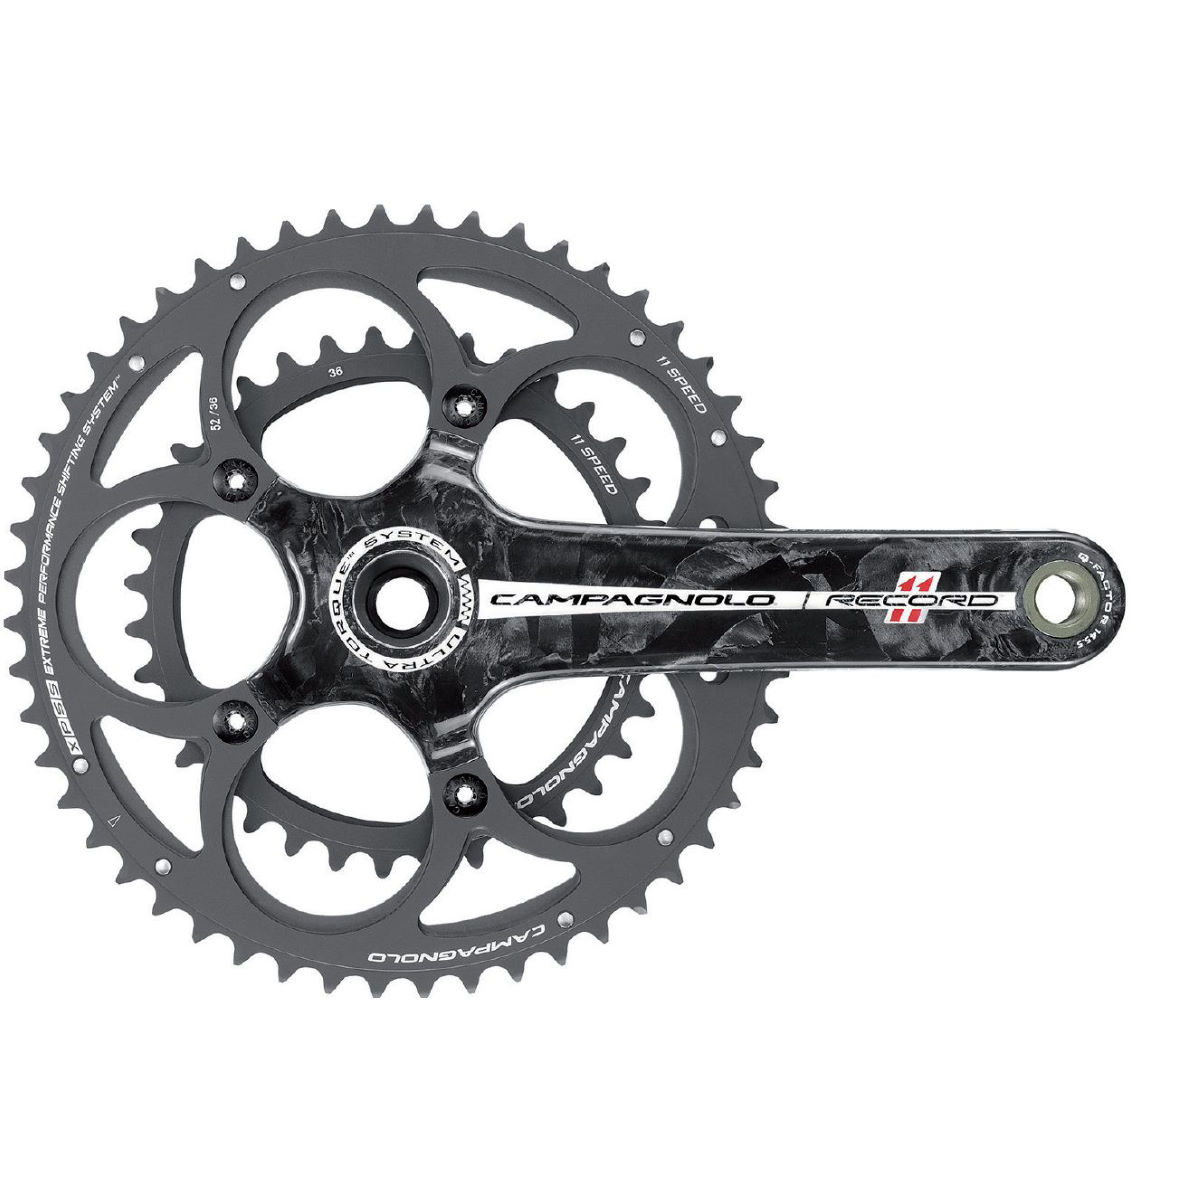 Campagnolo Record 11 Speed 52/36 Carbon Chainset   Chainsets